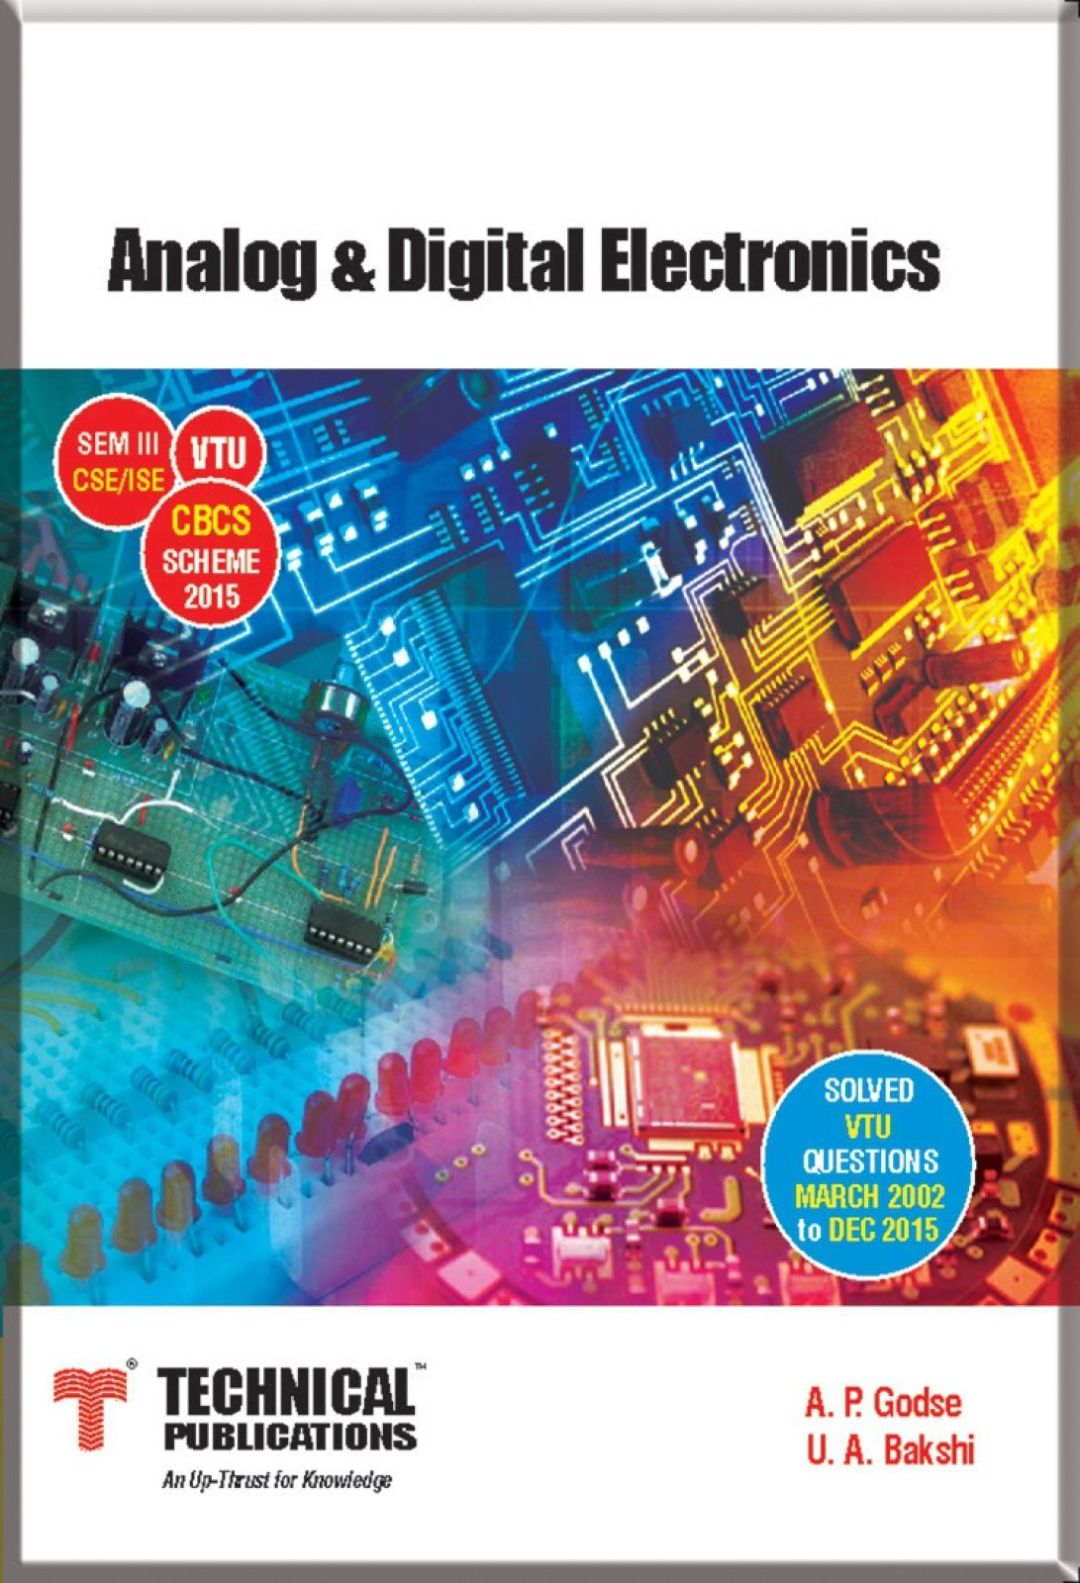 Pdf Analog Digital Electronics By U A Bakshi A P Godse Book Free Download Proeducator